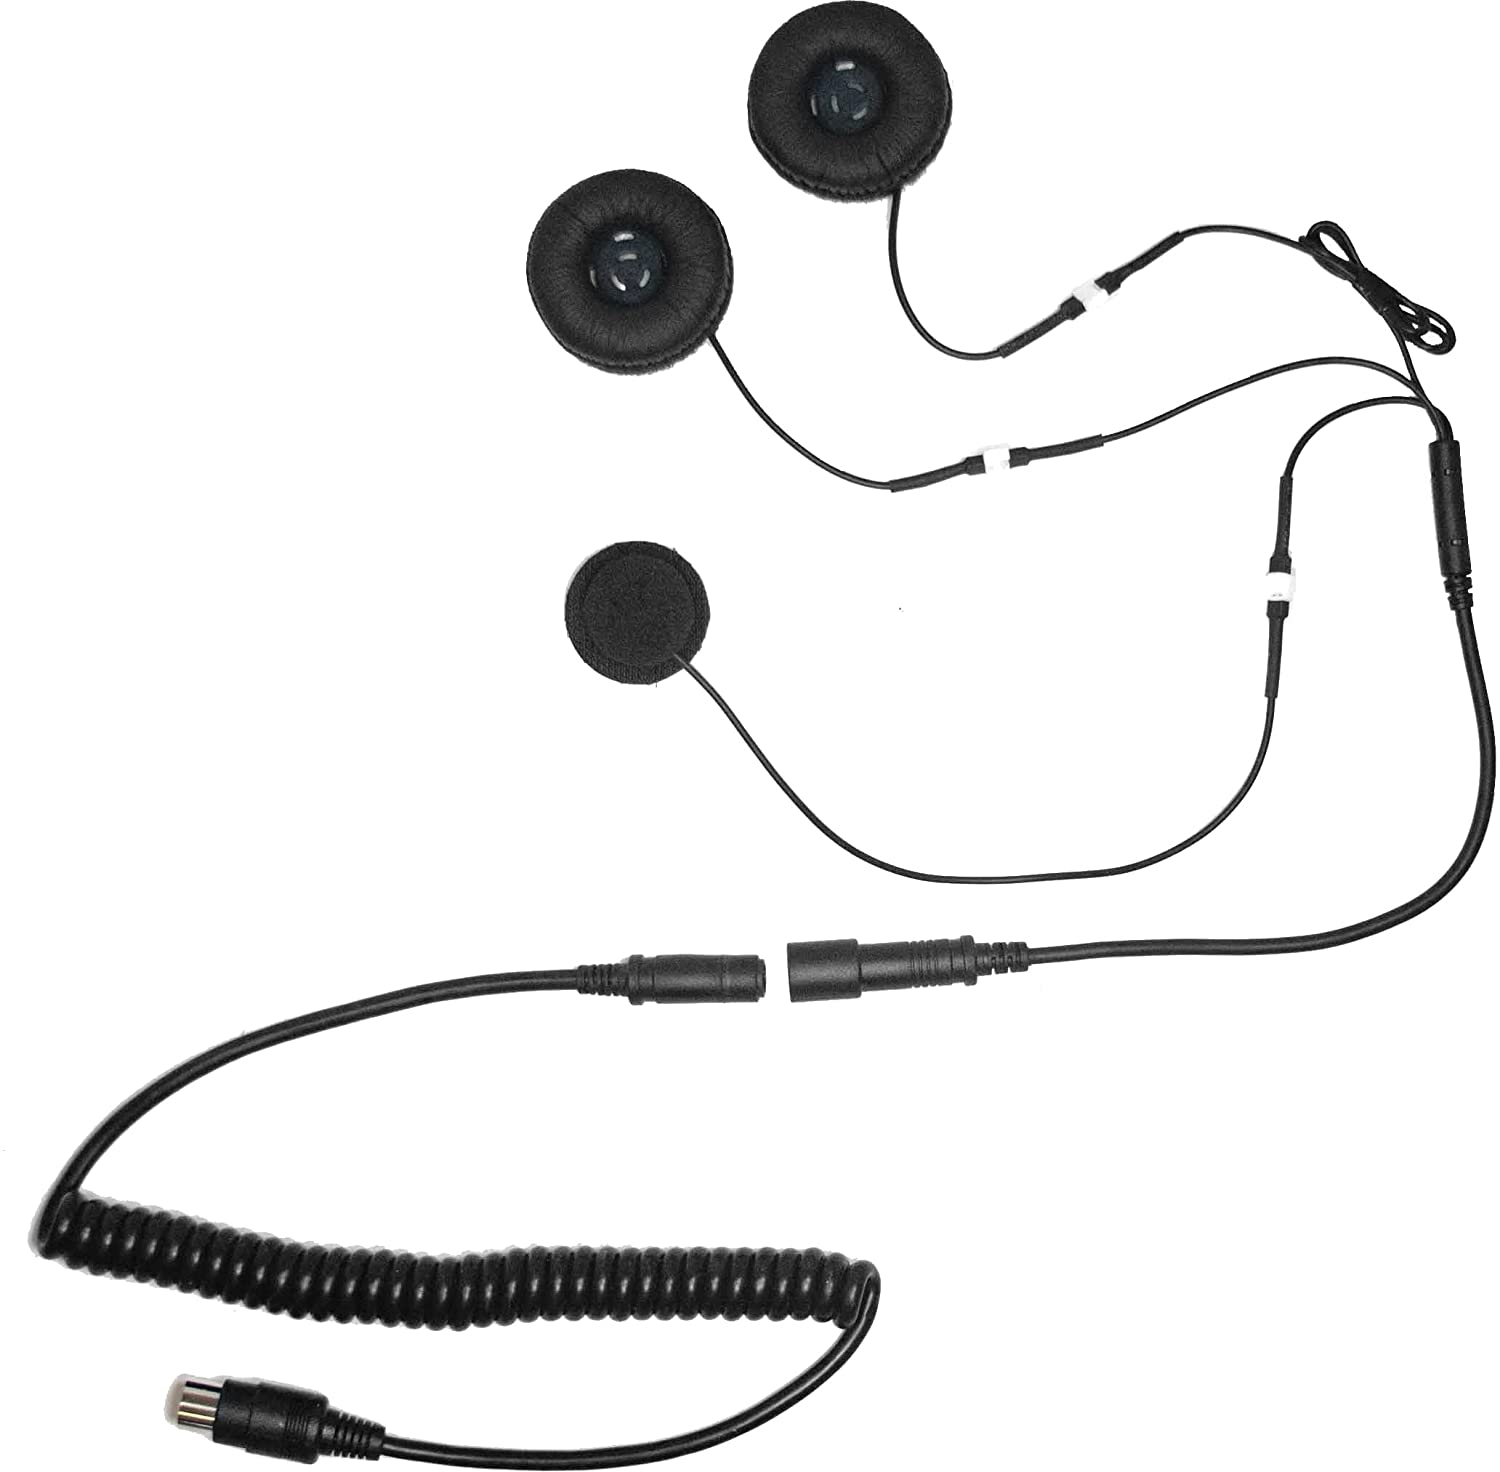 iMC Motorcom HS-H110P Headset for 7 Pin Harley Davidson Audio Systems